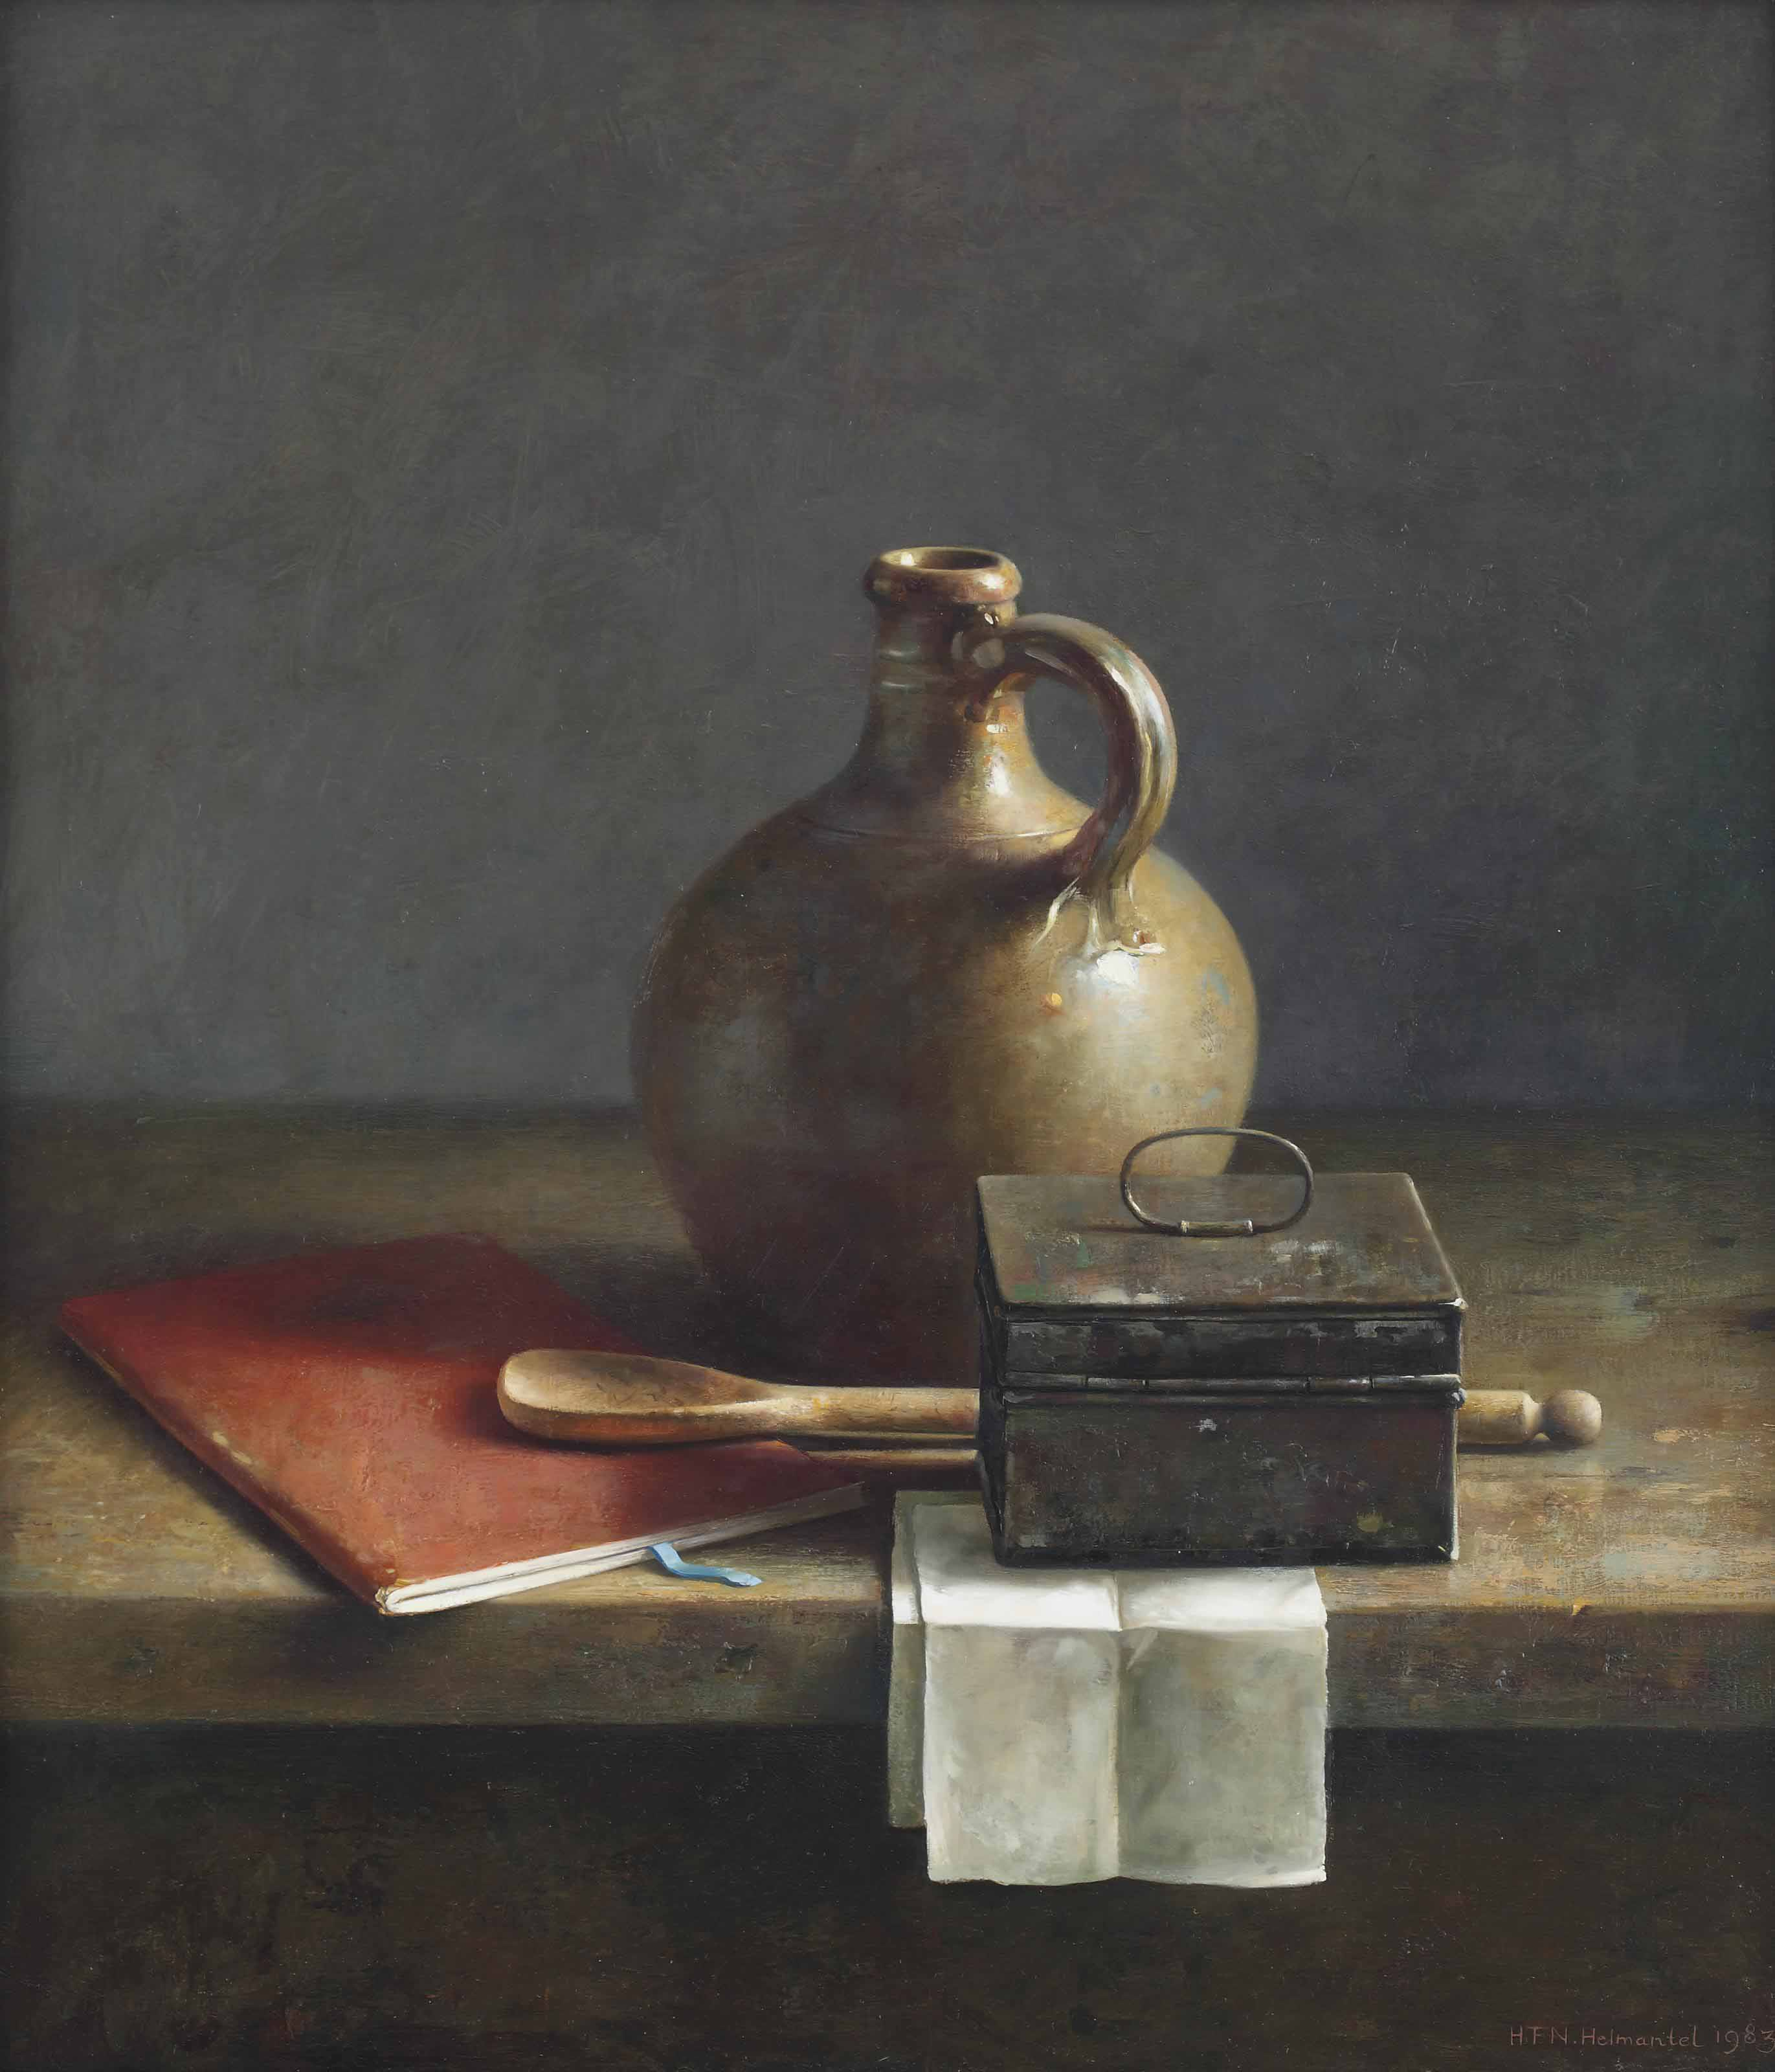 A still life with a jug, a box and a red book